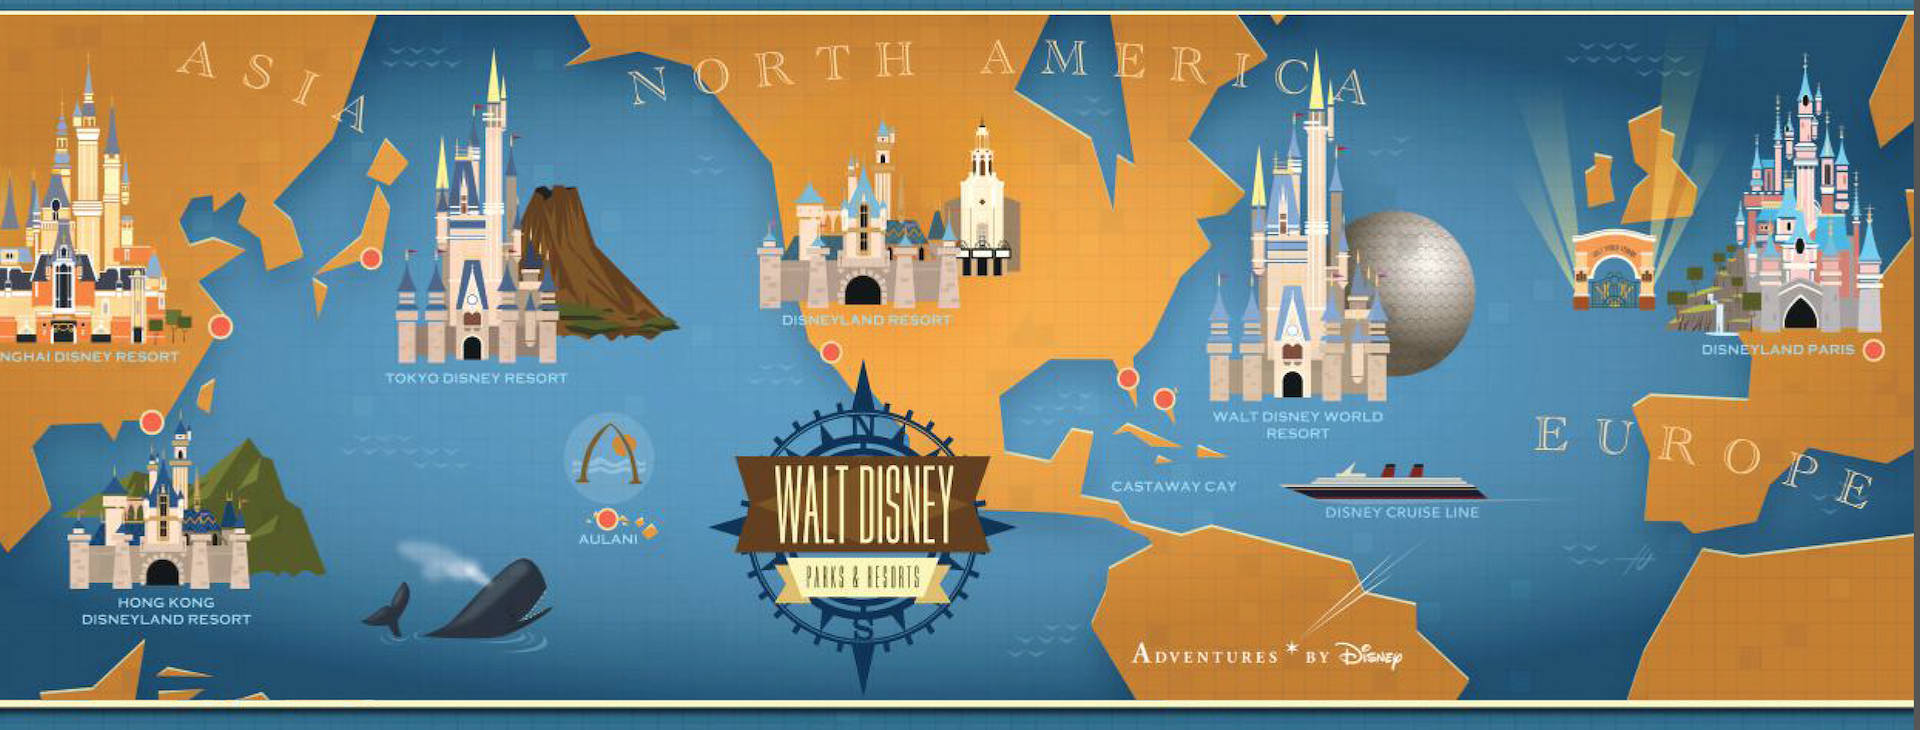 Walt disney parks and resorts growth fact sheet disney parks blog overview of walt disney parks and resorts freerunsca